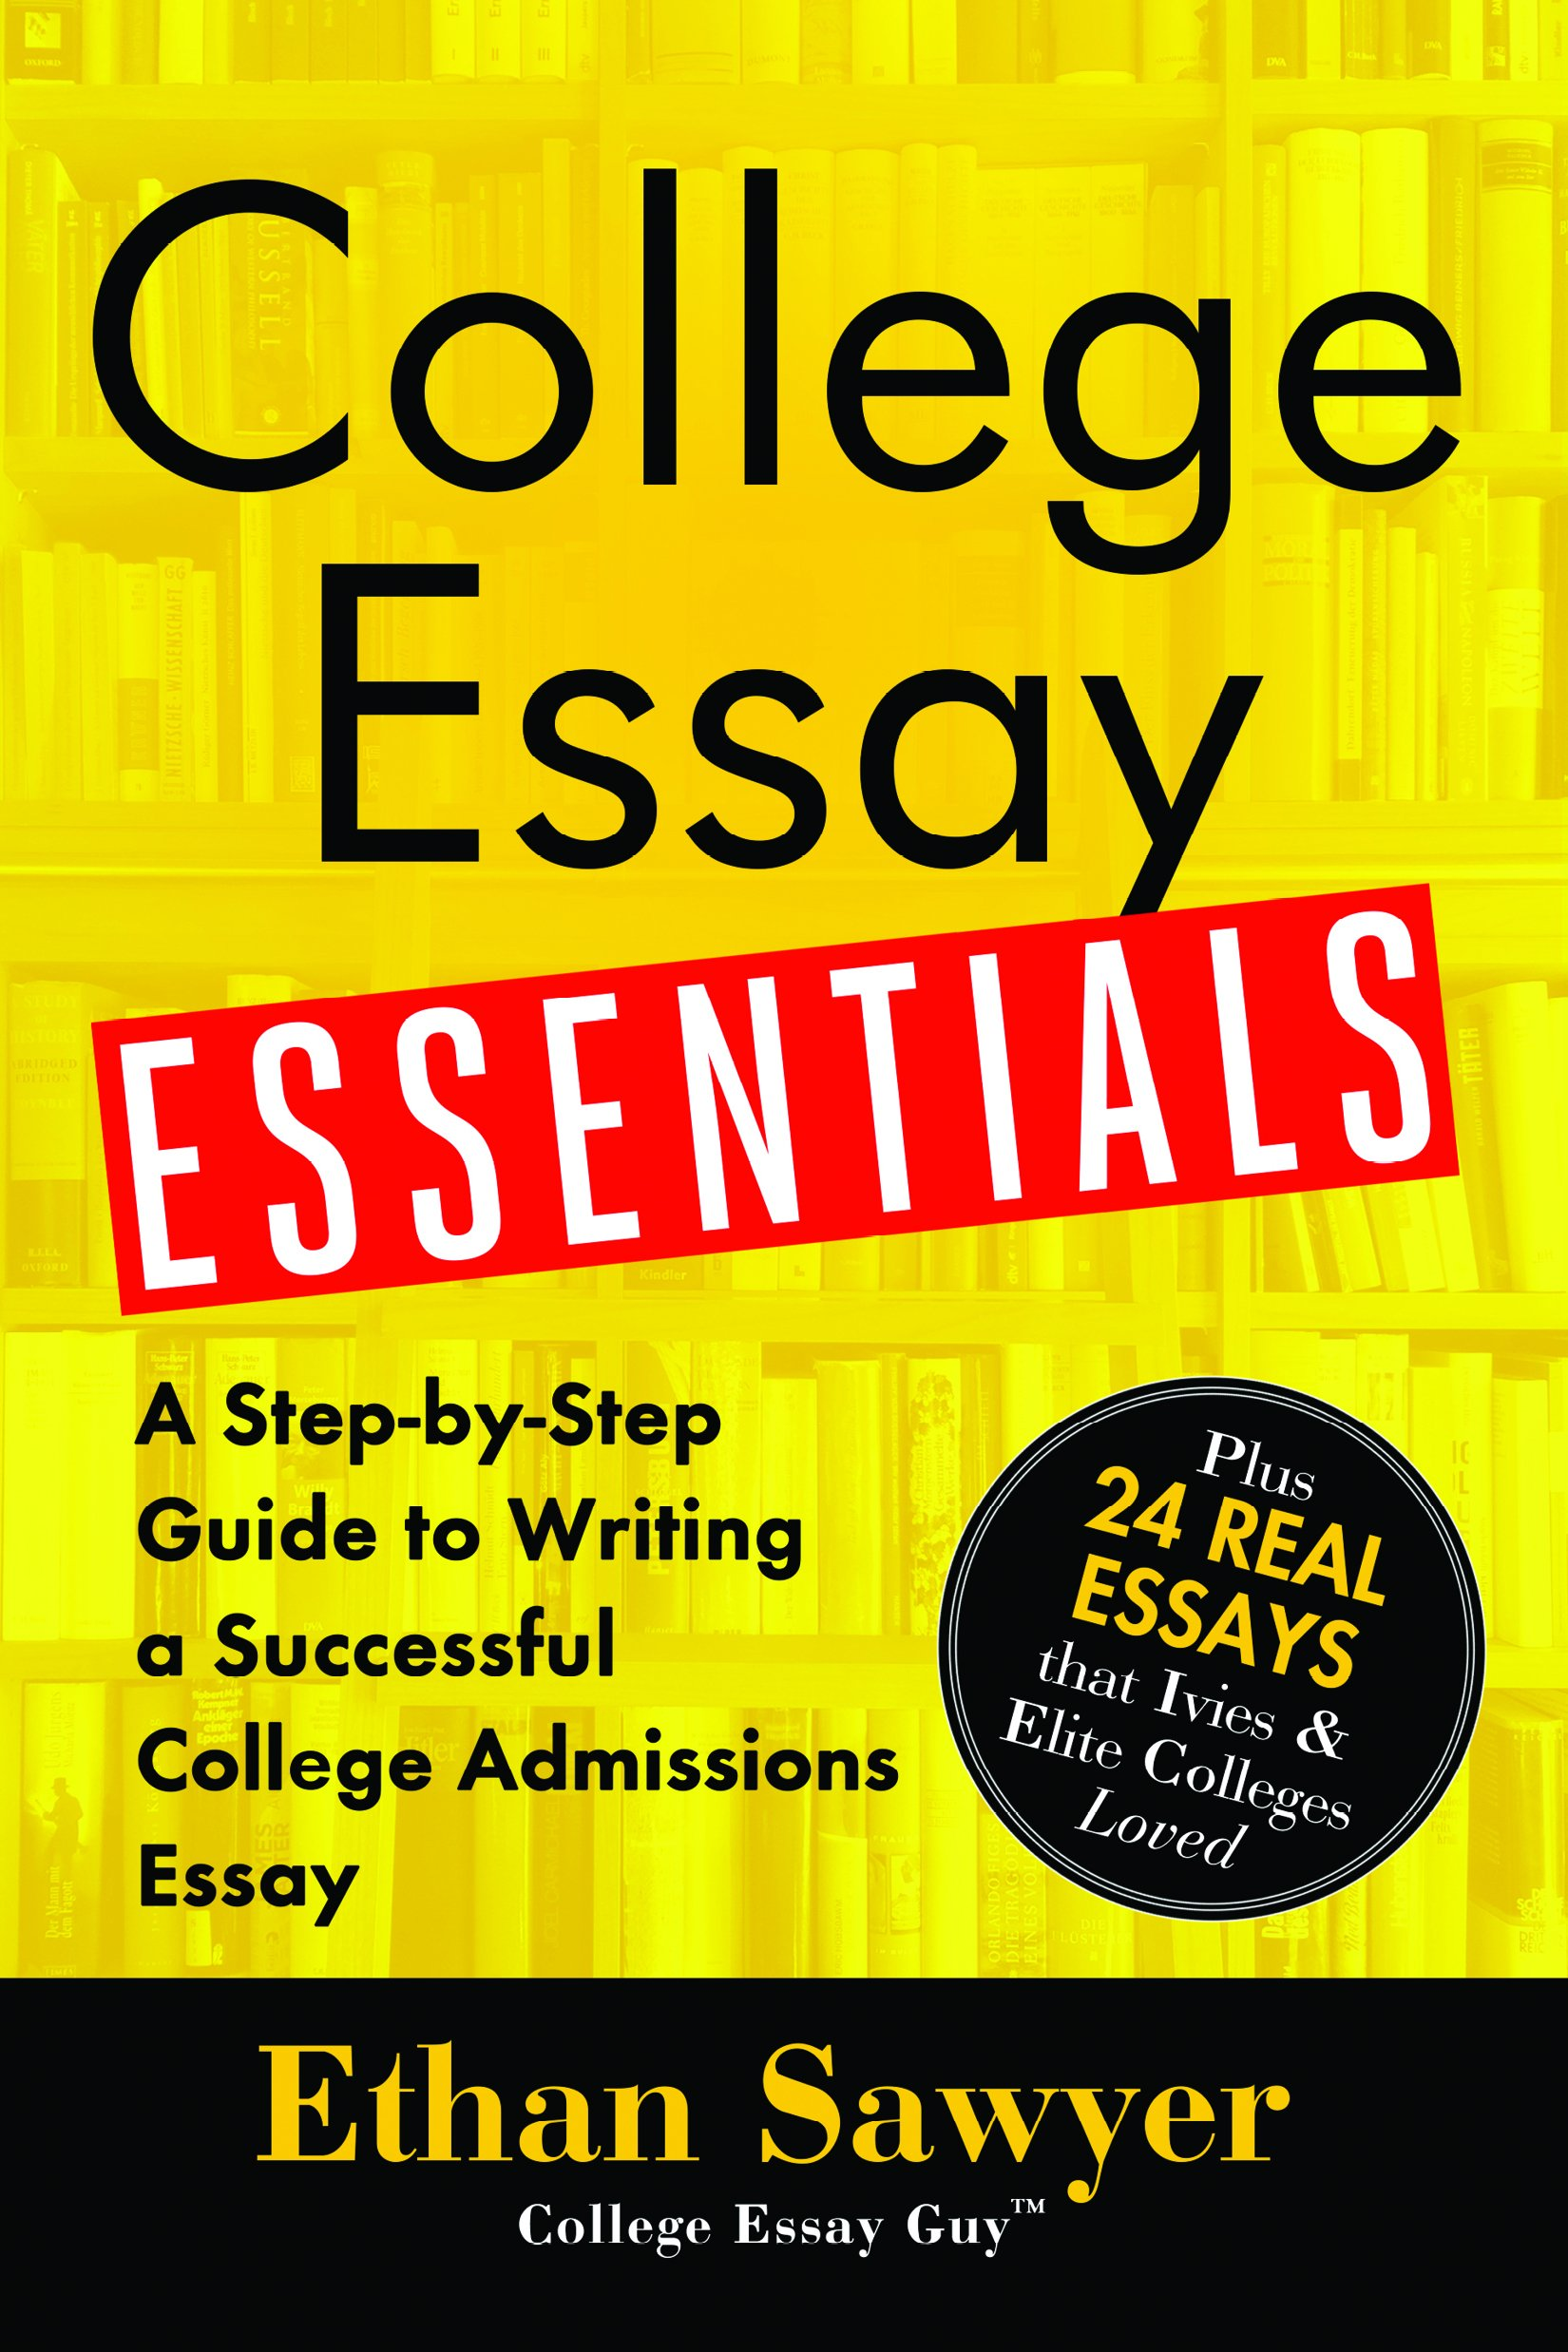 college essay essentials a stepbystep guide to writing a  college essay essentials a stepbystep guide to writing a successful  college admissions essay paperback  july